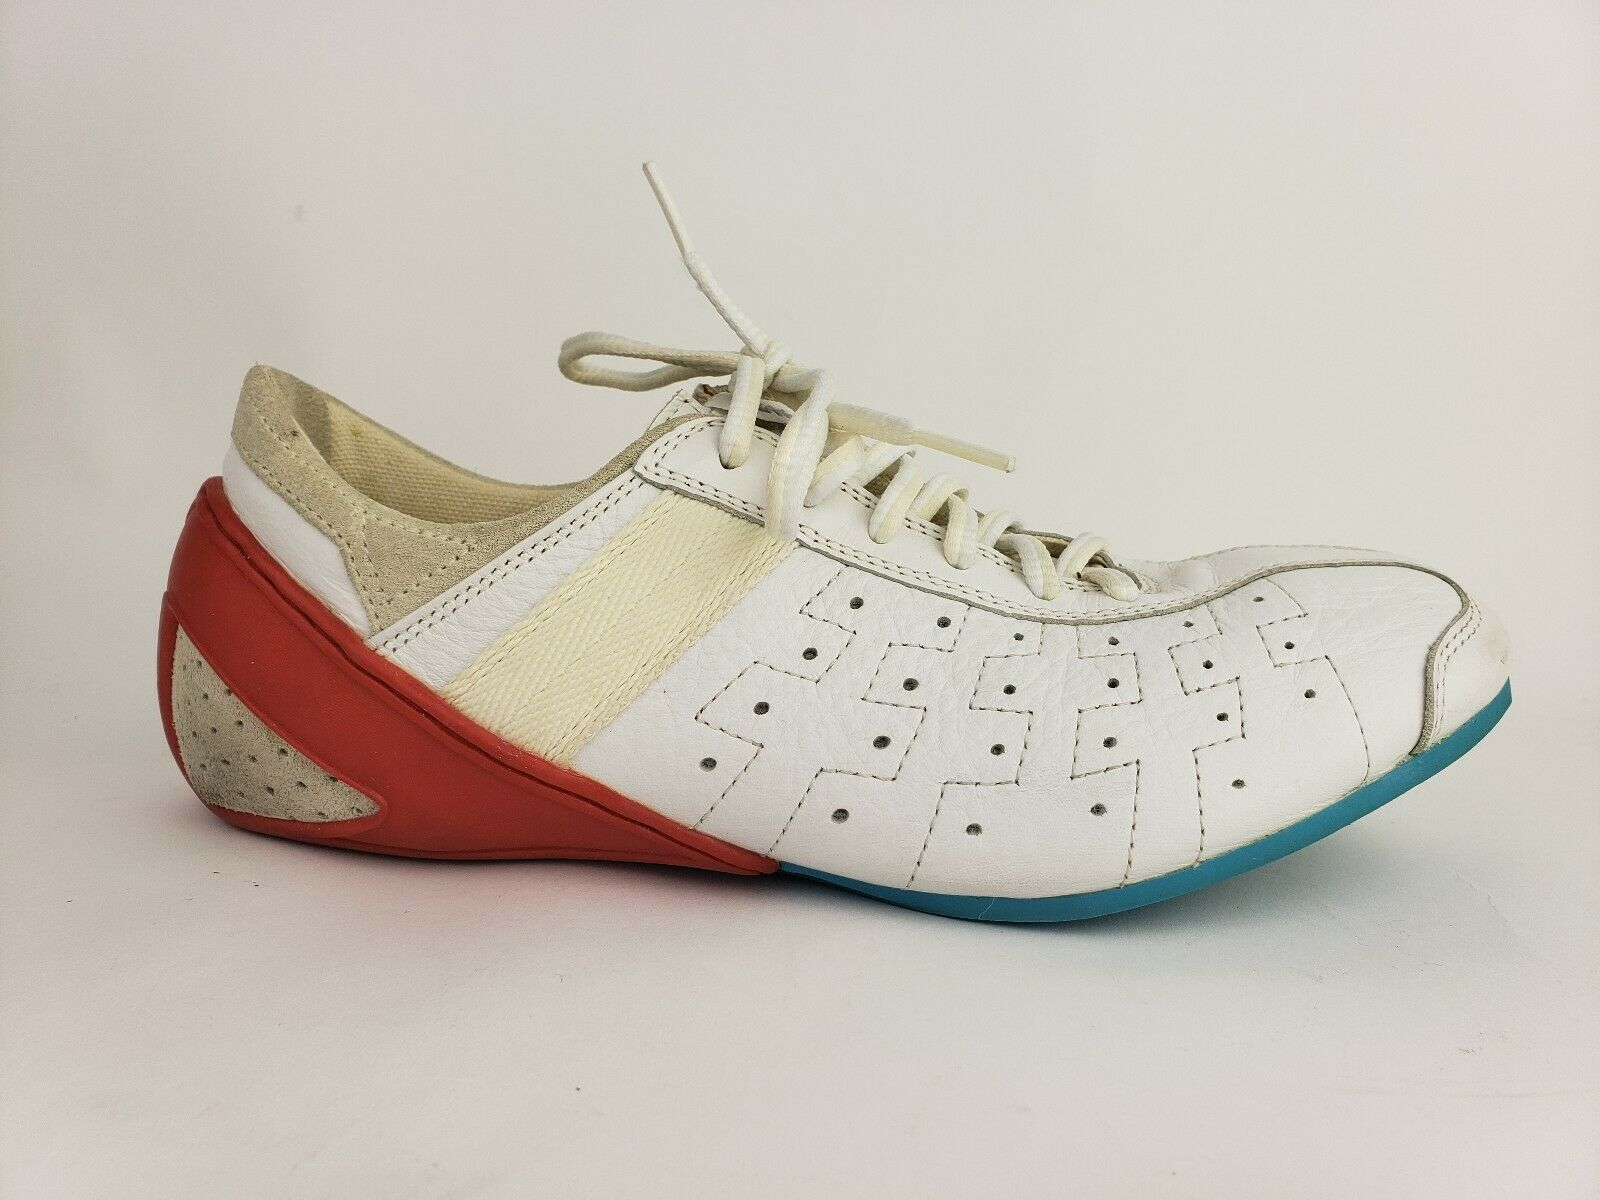 Pony Mens Size 9.5 Vintage Sneakers White Red Teal bluee (702100007221)